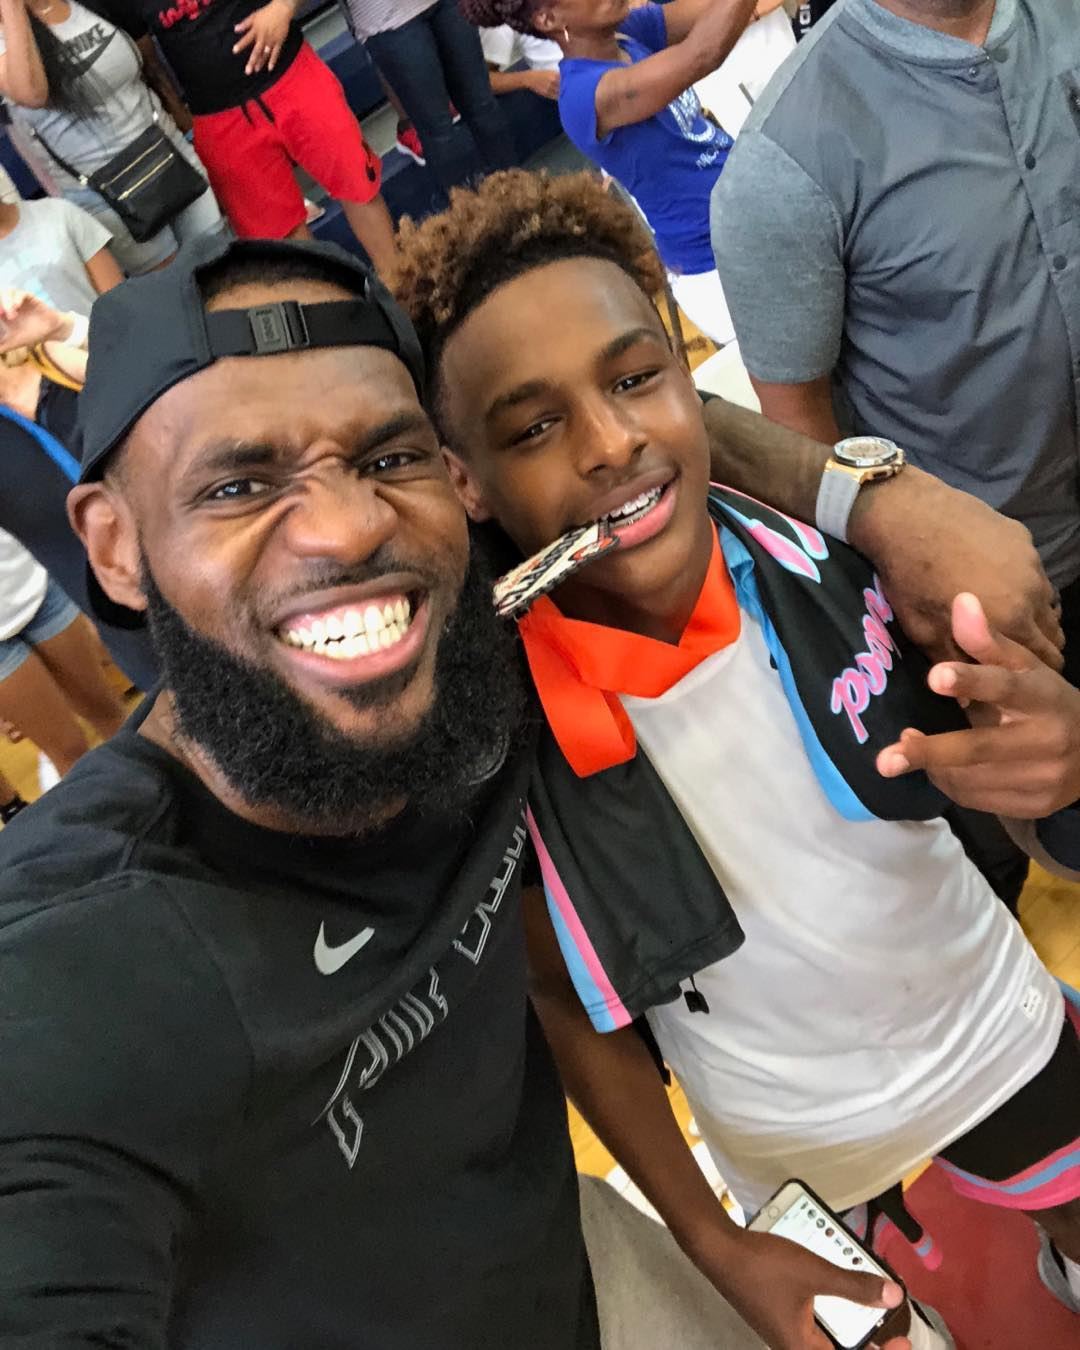 LeBron James Instagram: Happy 14th Bday to my first born Bronny! U make me proud every single day to say...